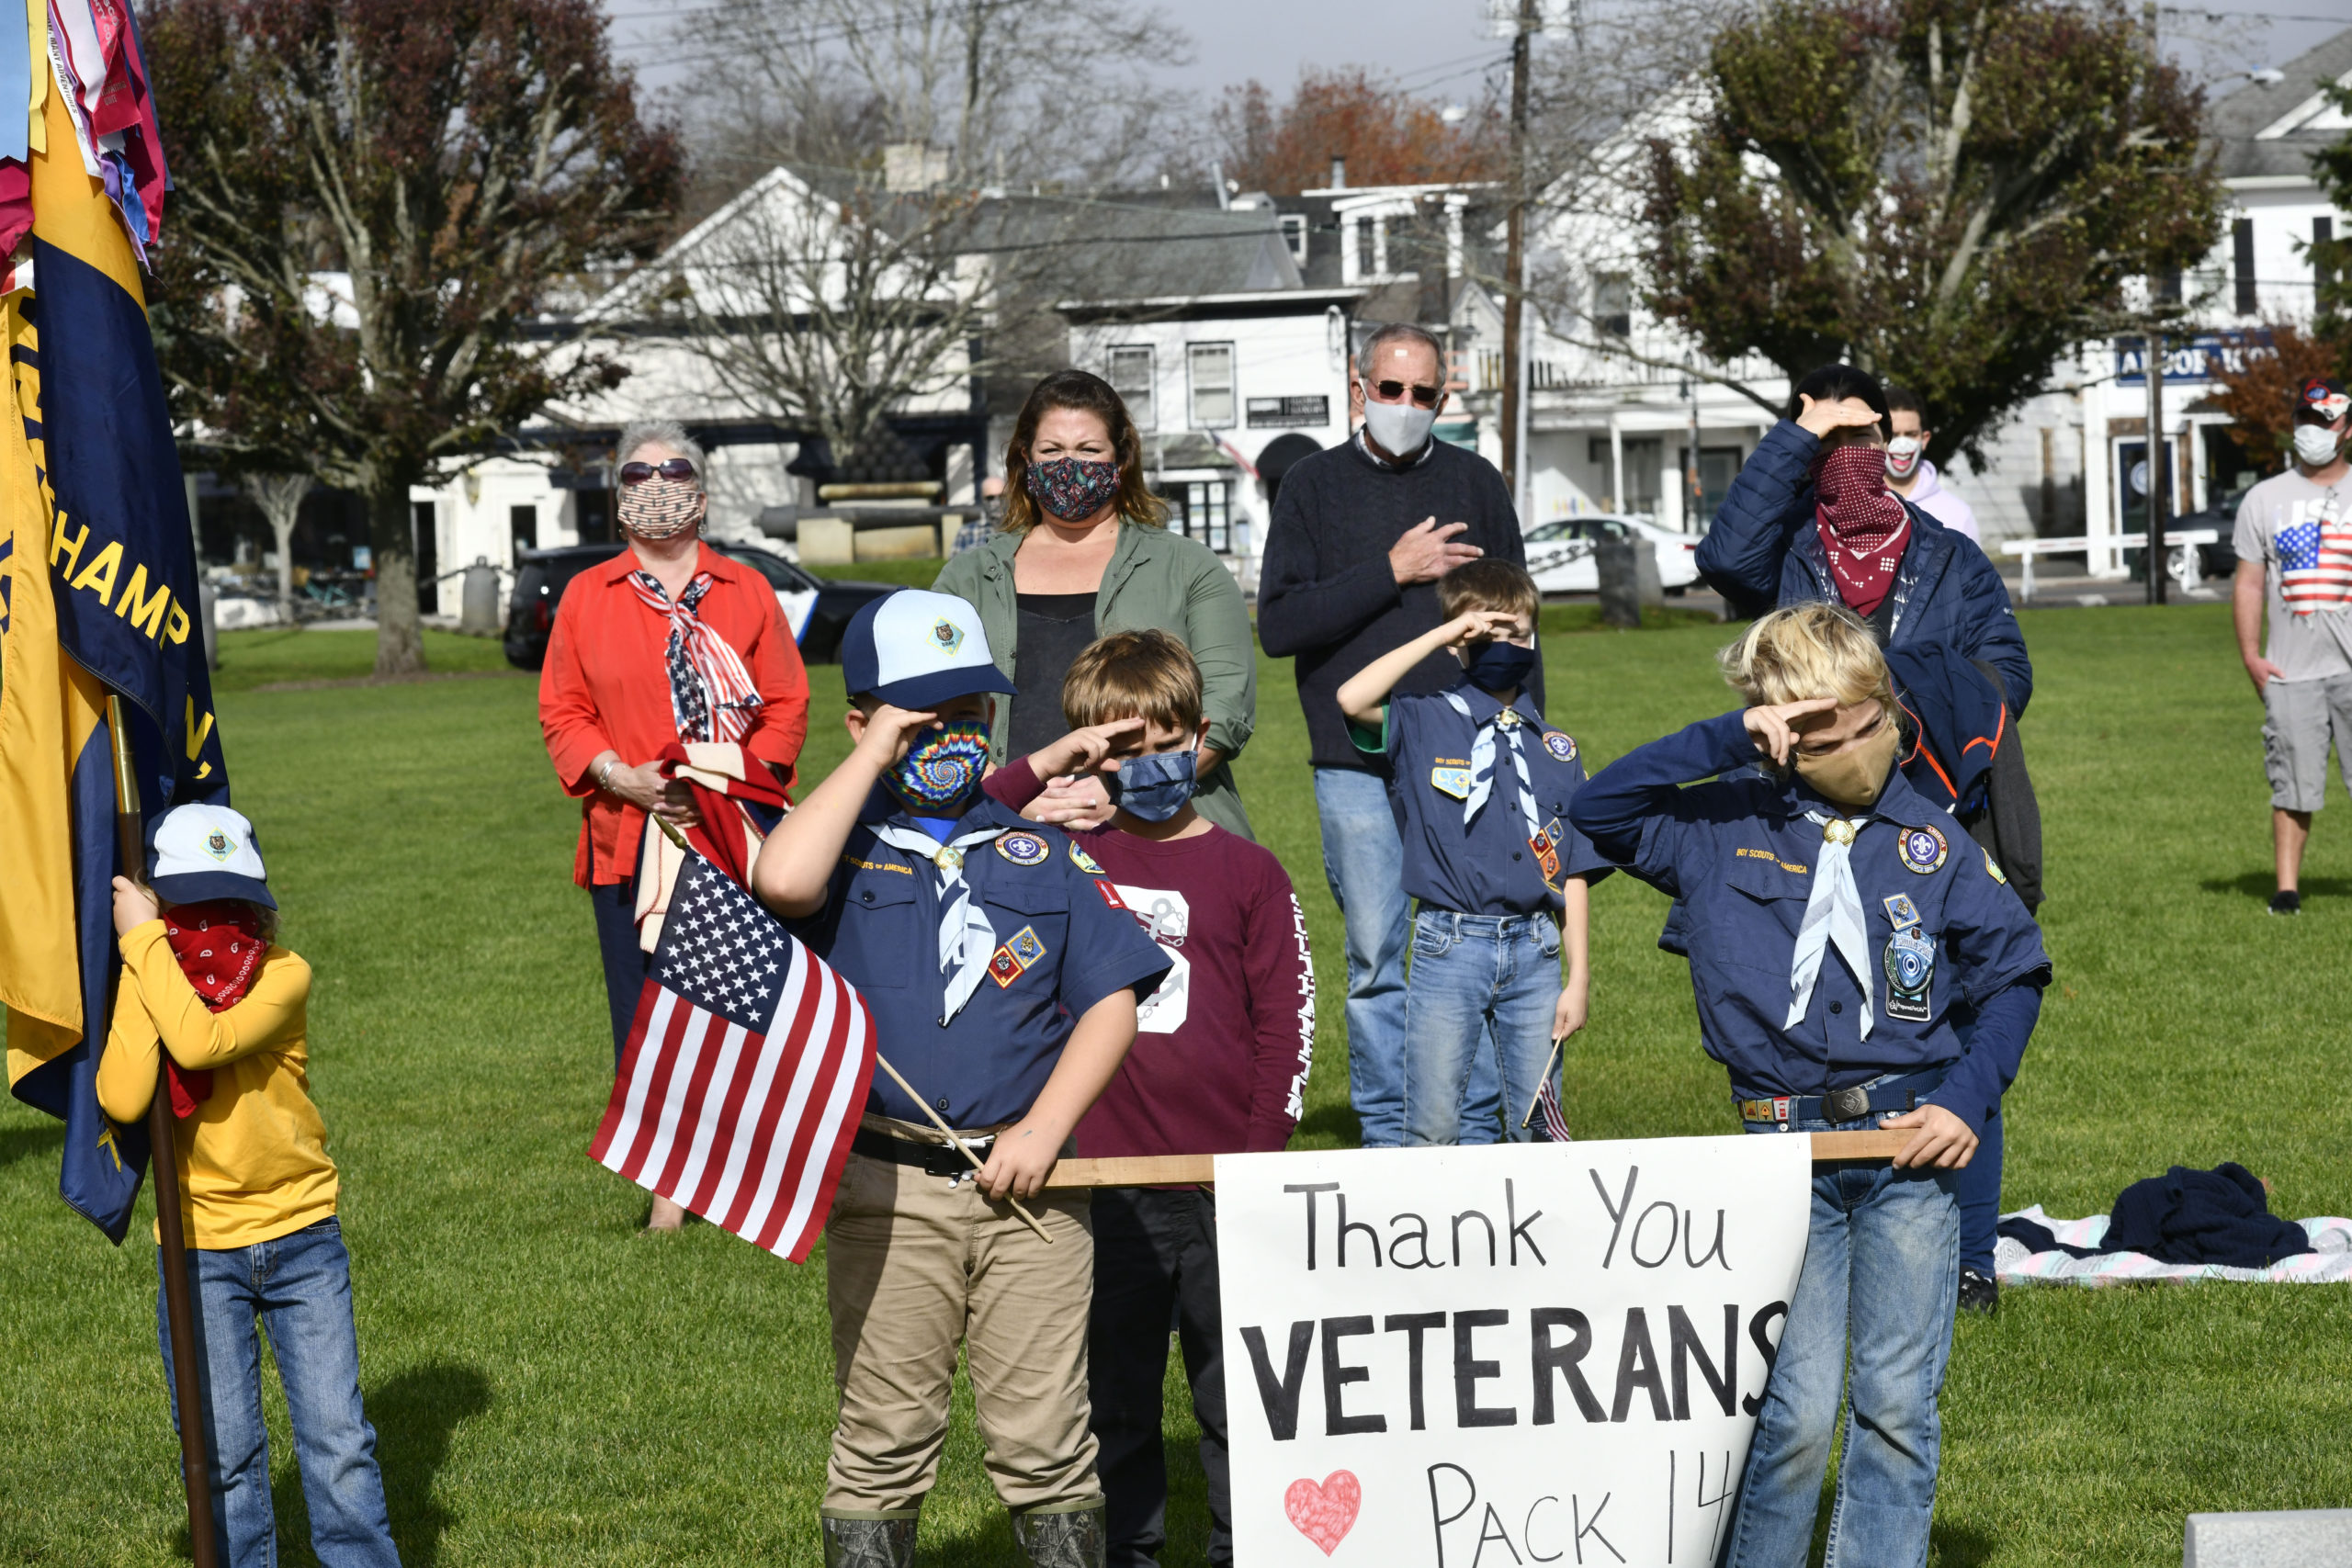 Veterans Day services were hled in Agawam Park in Southampton Village on Wednesday, November 11.